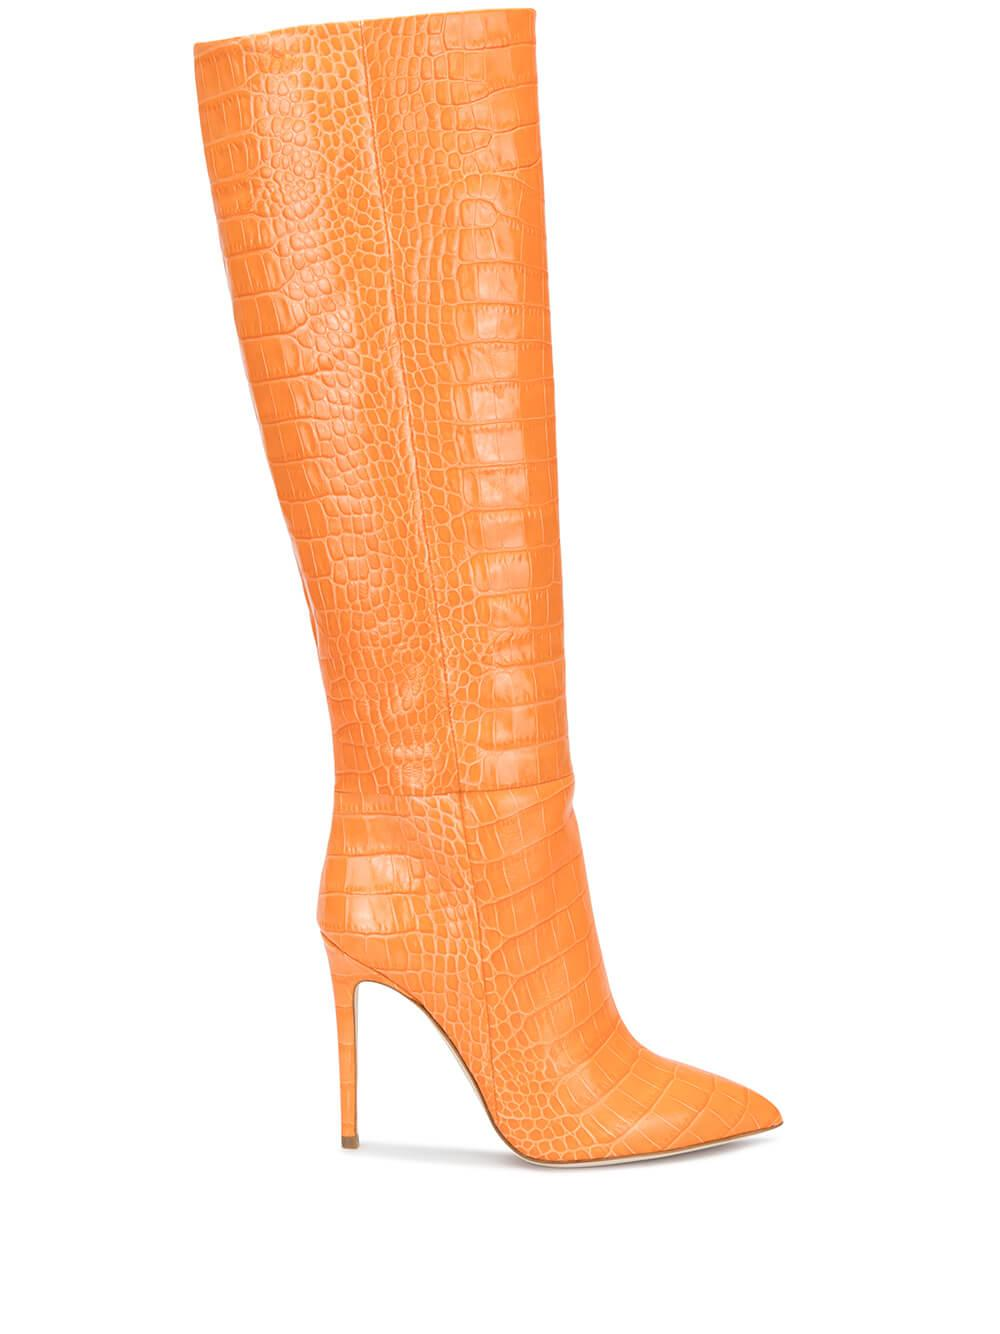 High Heel Croc Boot